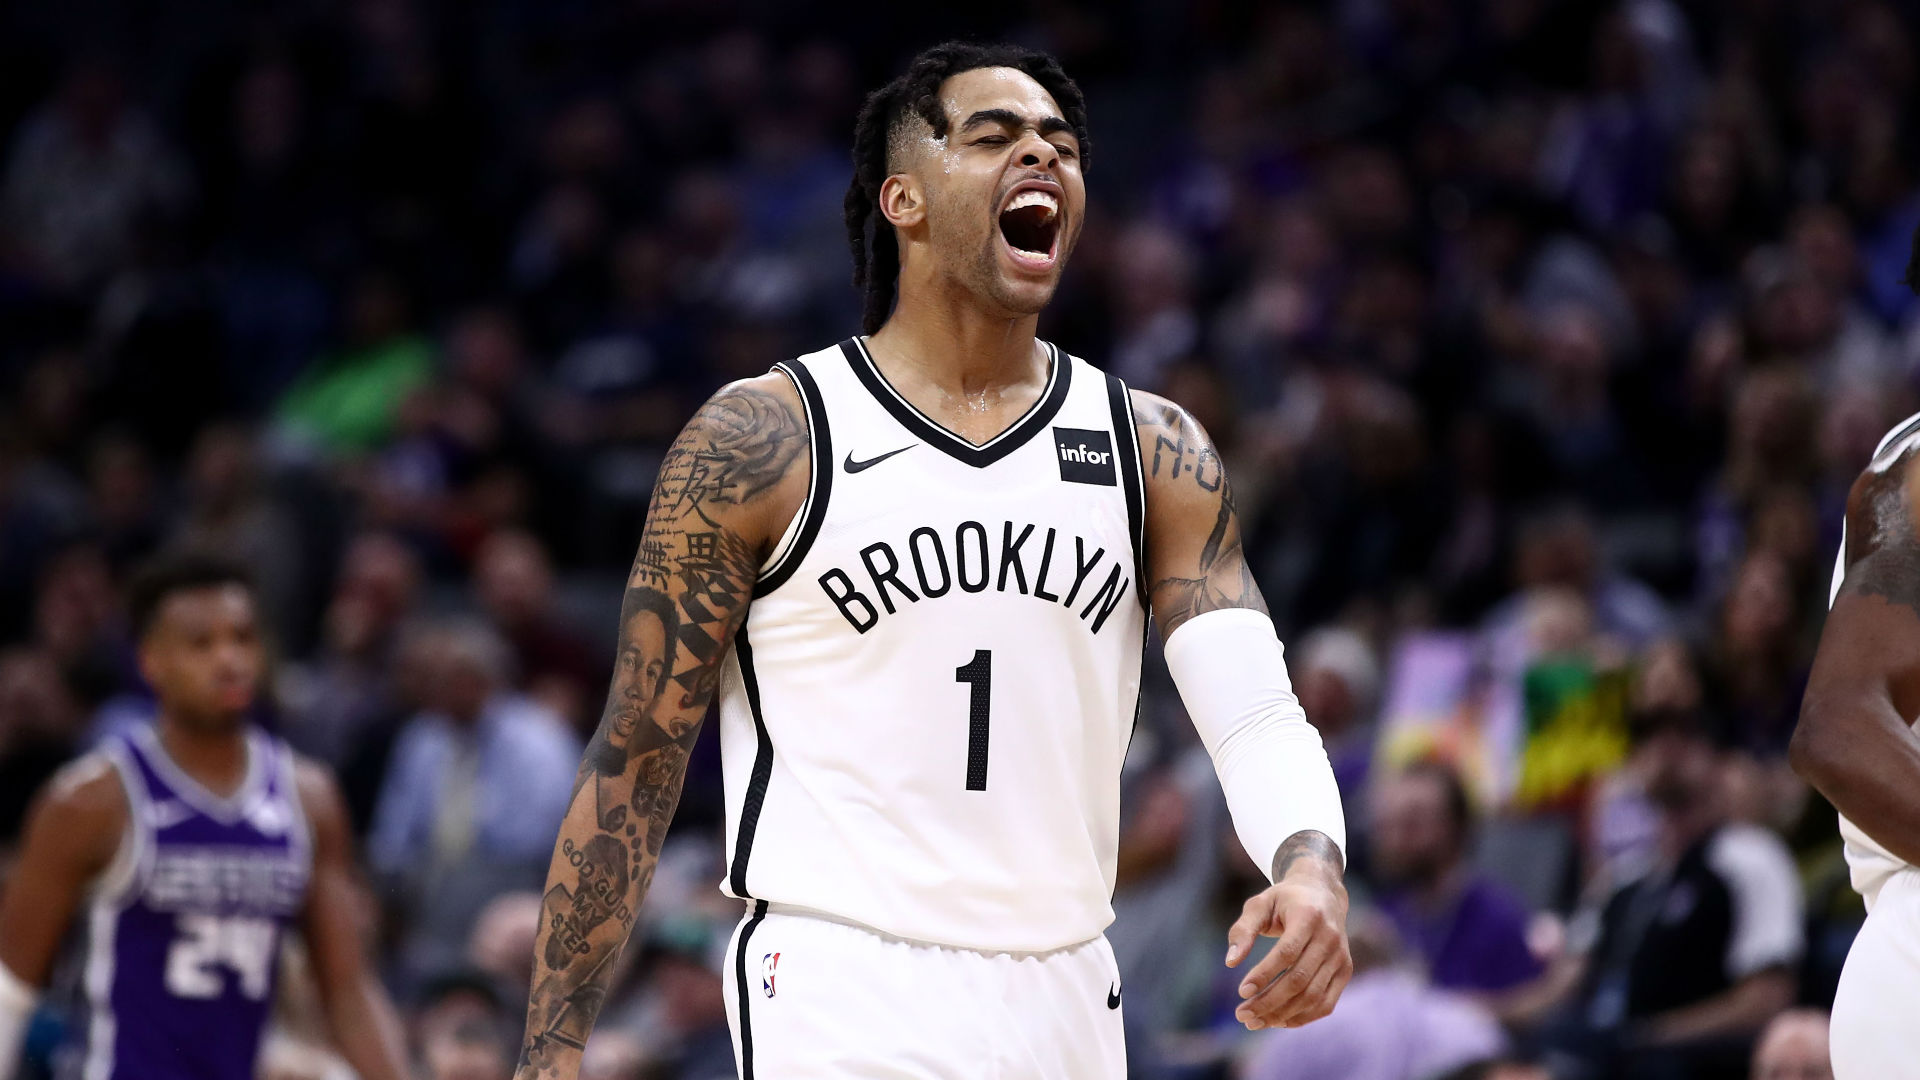 Nets' D'Angelo Russell on his 44-point game vs. Kings: You 'find a way to get it done'